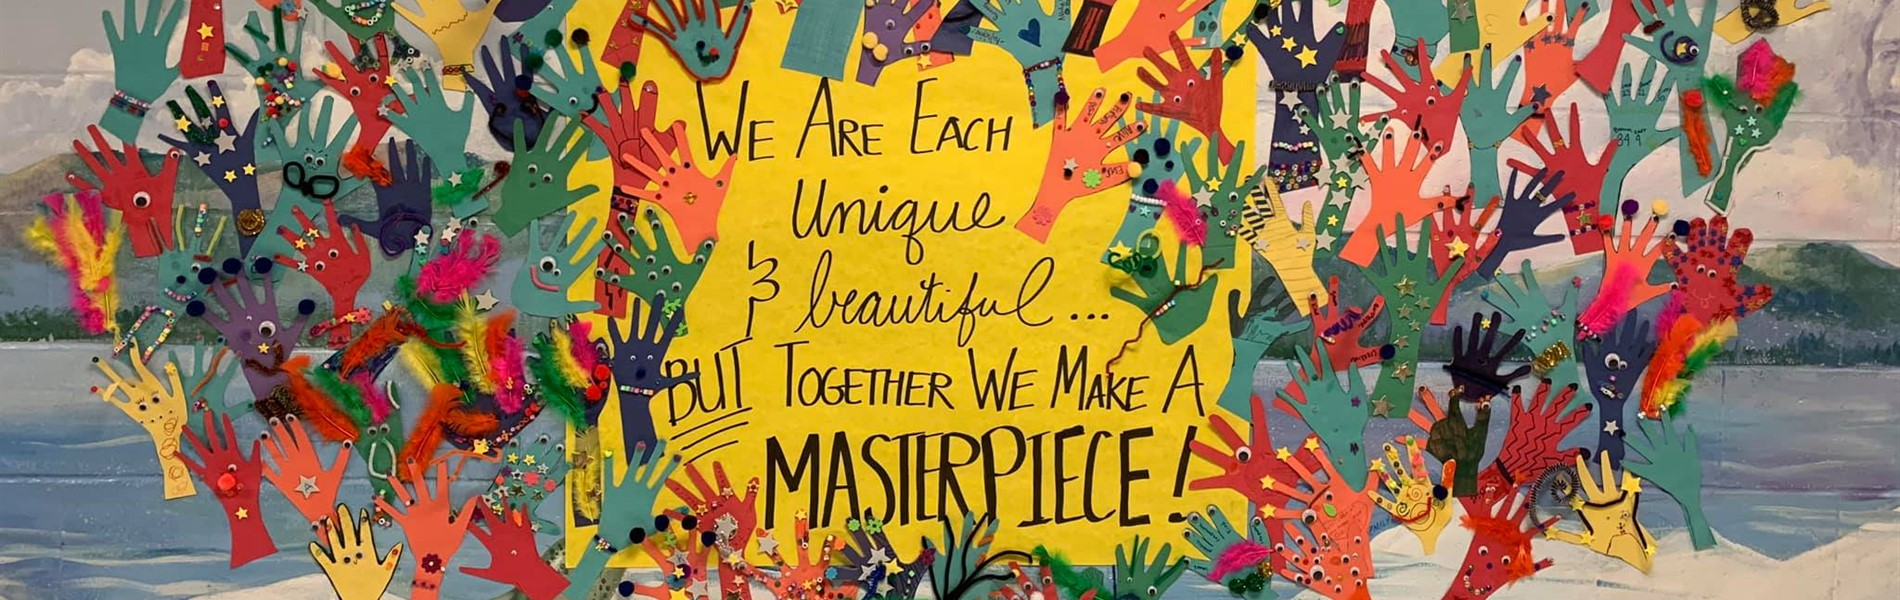 We are each unique and beautiful but together we make a masterpiece! poster with student artwork.